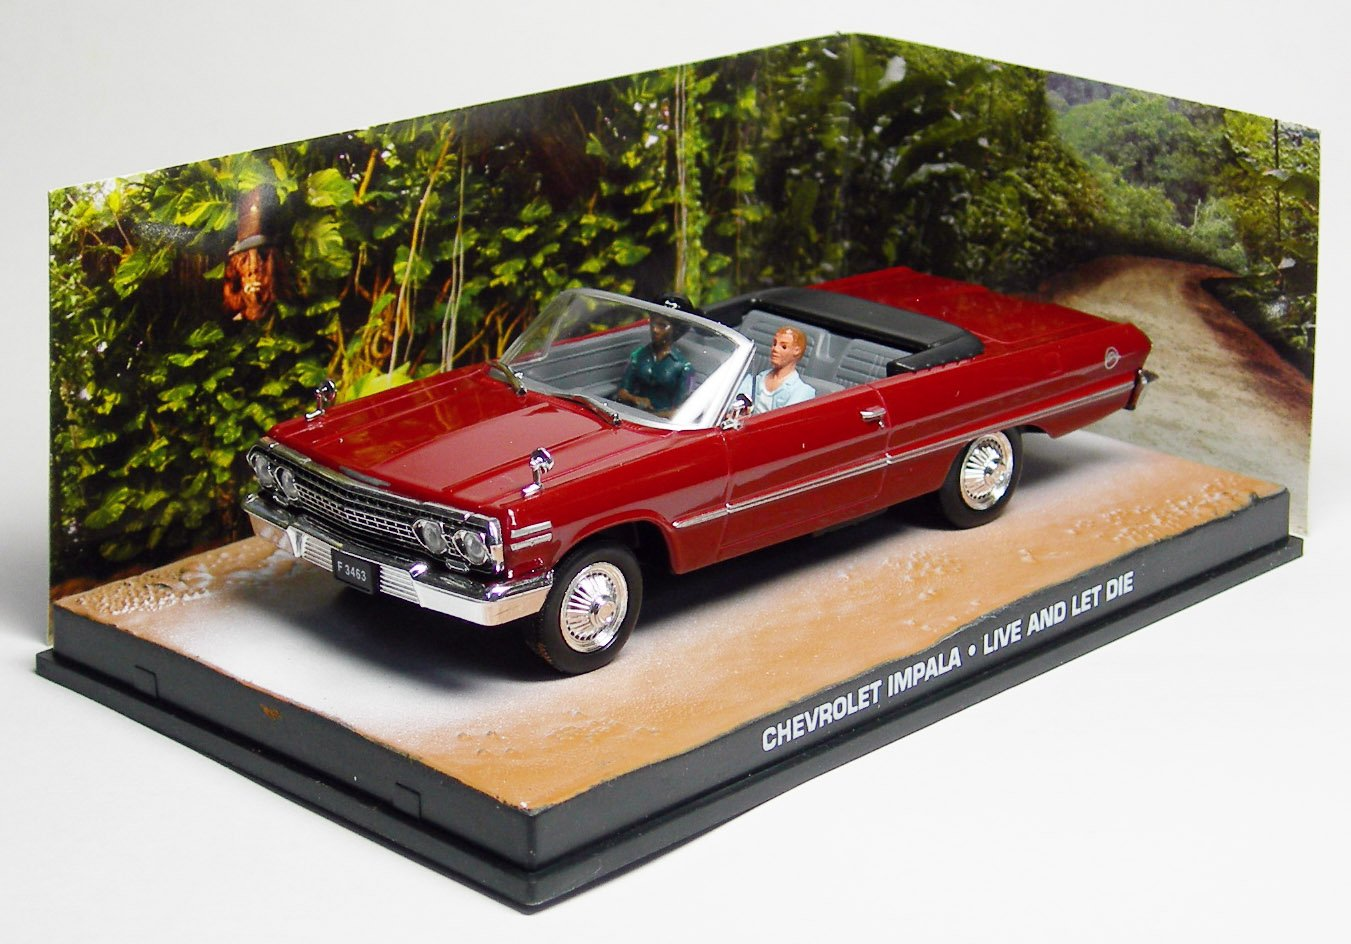 007 James Bond Car Collection #54 Chevrolet Impala convertible Live and let die